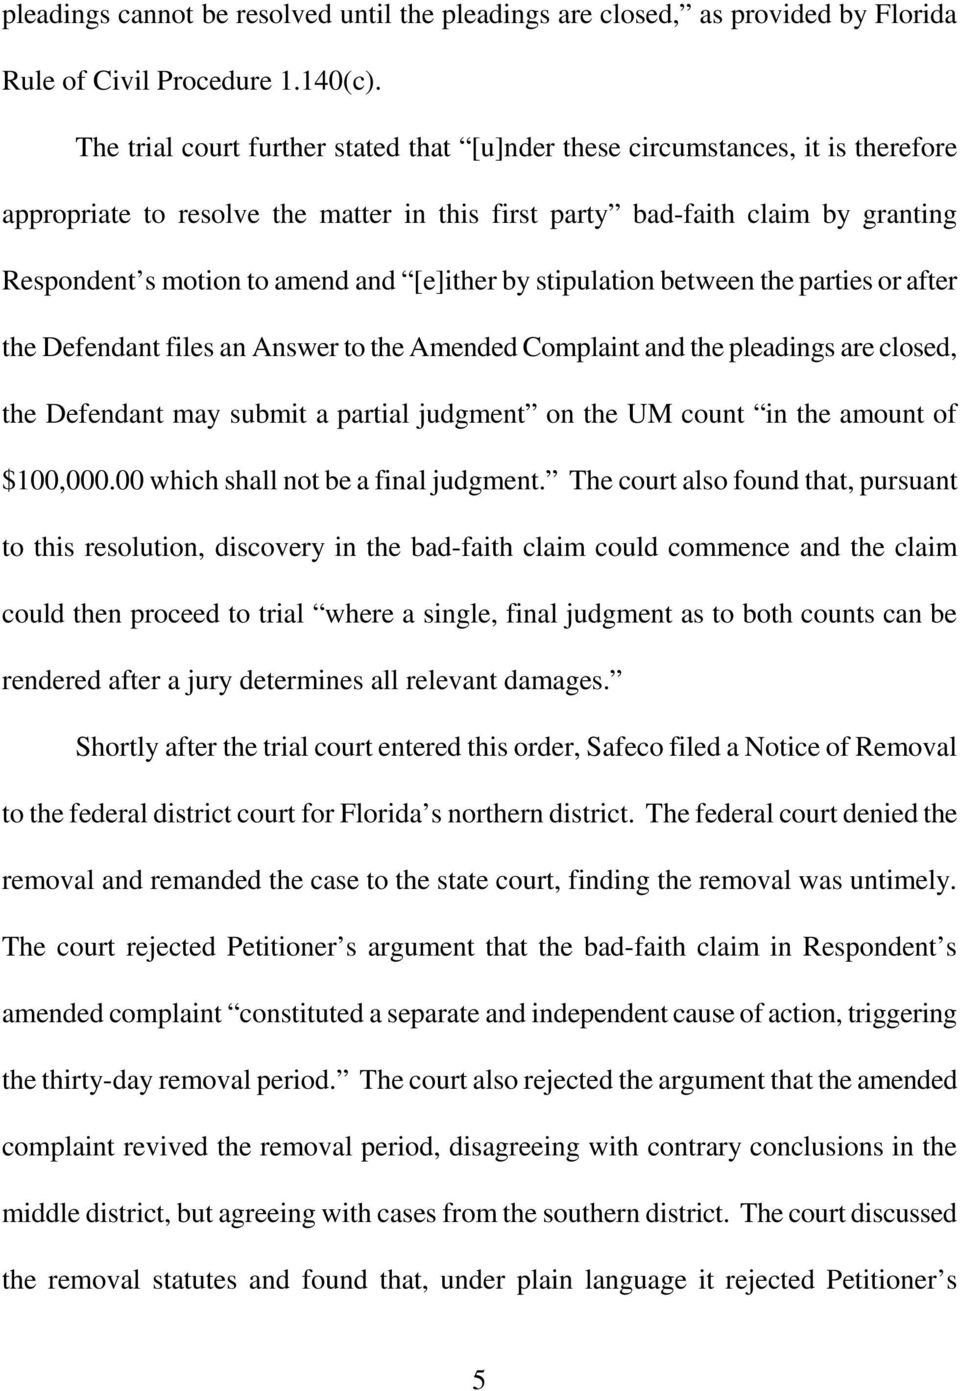 [e]ither by stipulation between the parties or after the Defendant files an Answer to the Amended Complaint and the pleadings are closed, the Defendant may submit a partial judgment on the UM count